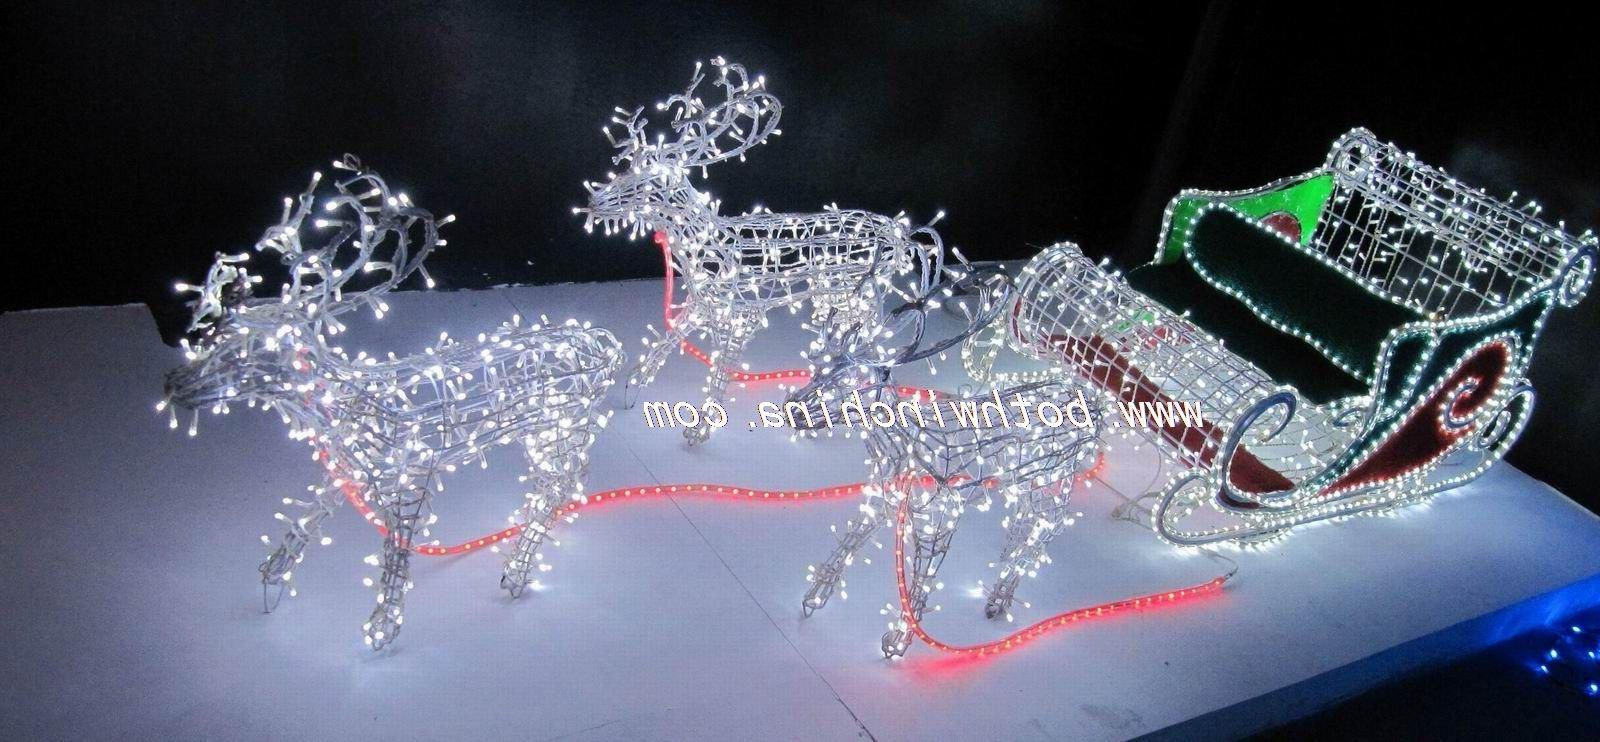 LED 3D motif animals lights